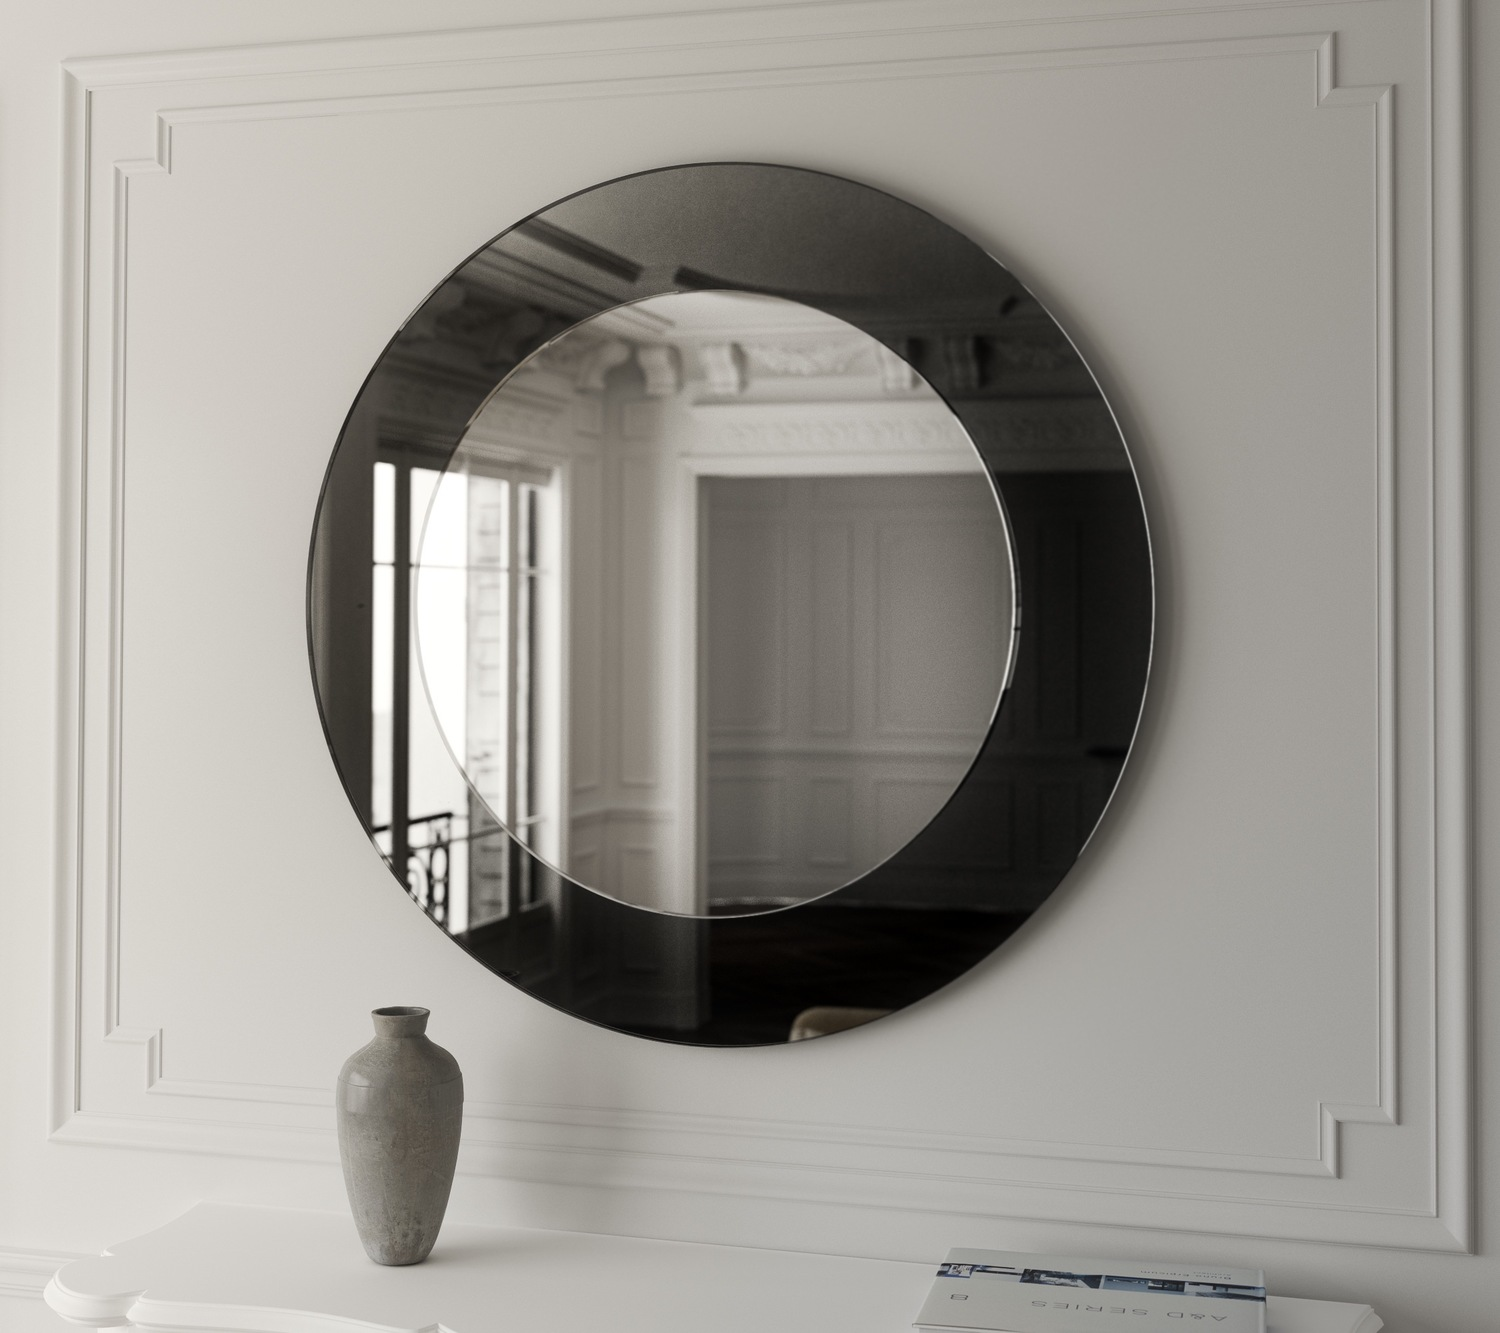 Black mirrored border on this Art Deco wall mirror